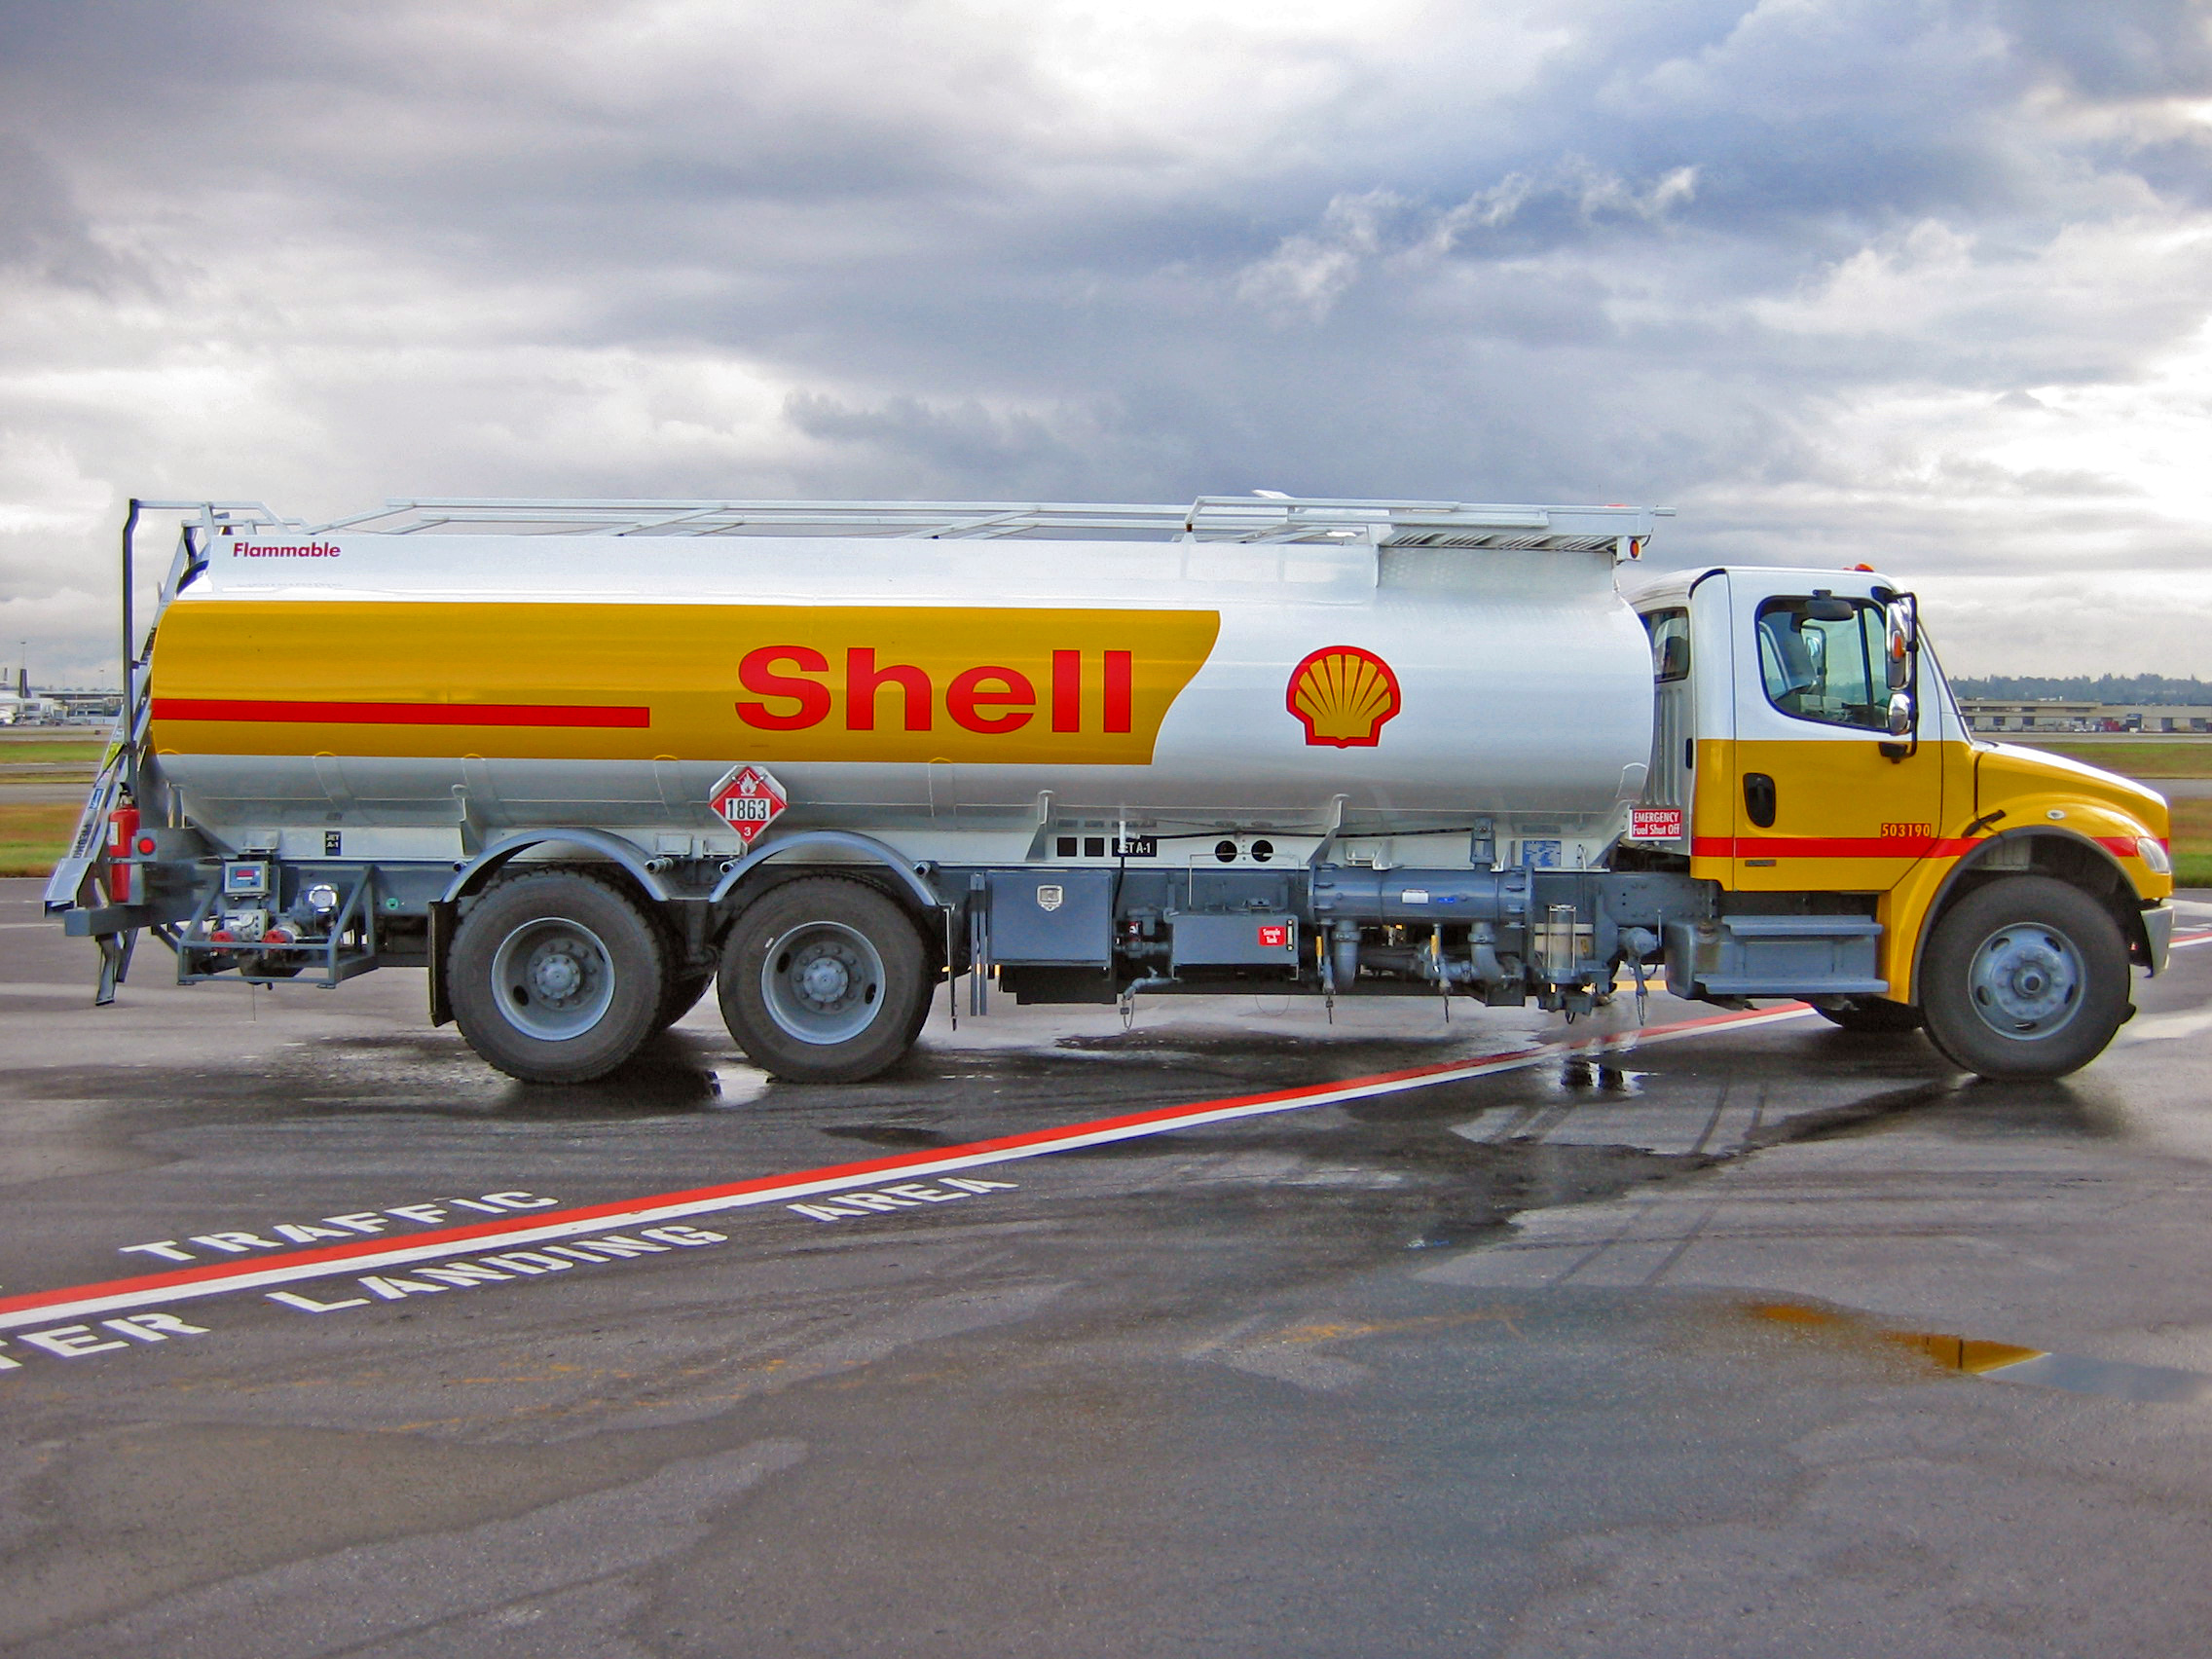 Shell Oil Truck. Photo by Lommer. Released under the GNU Free Documentation License.